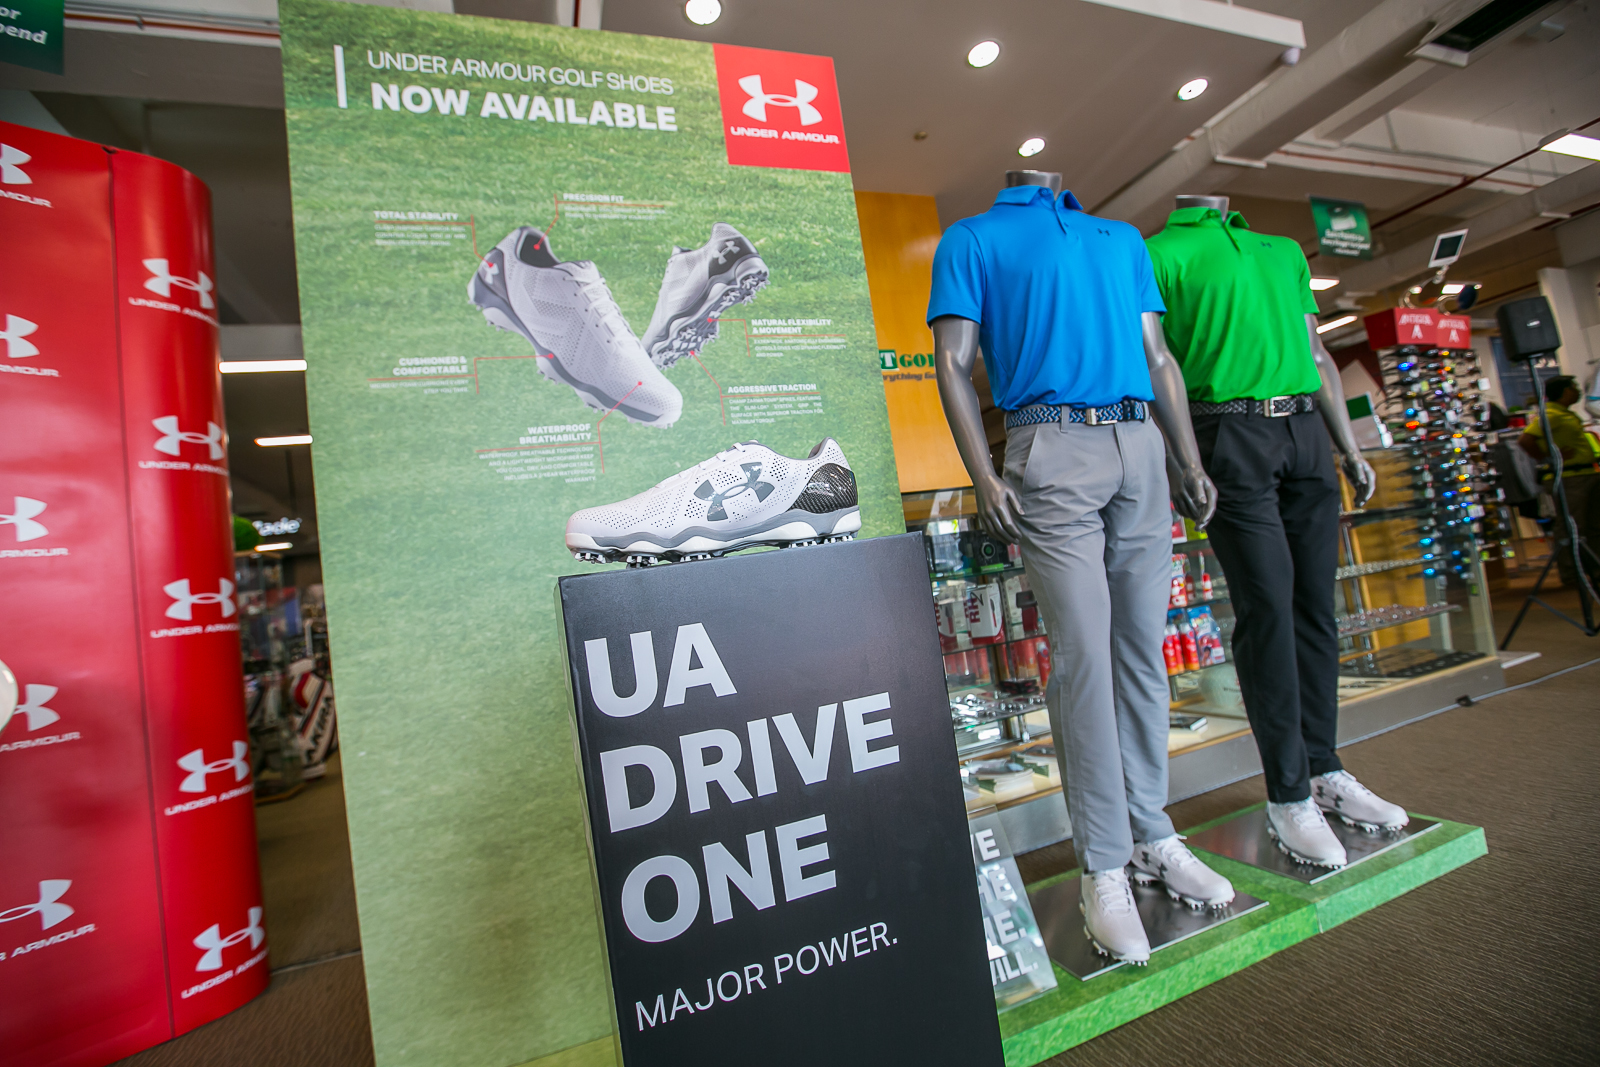 The UA Drive One was officially launched at MST Superstore Subang Jaya.